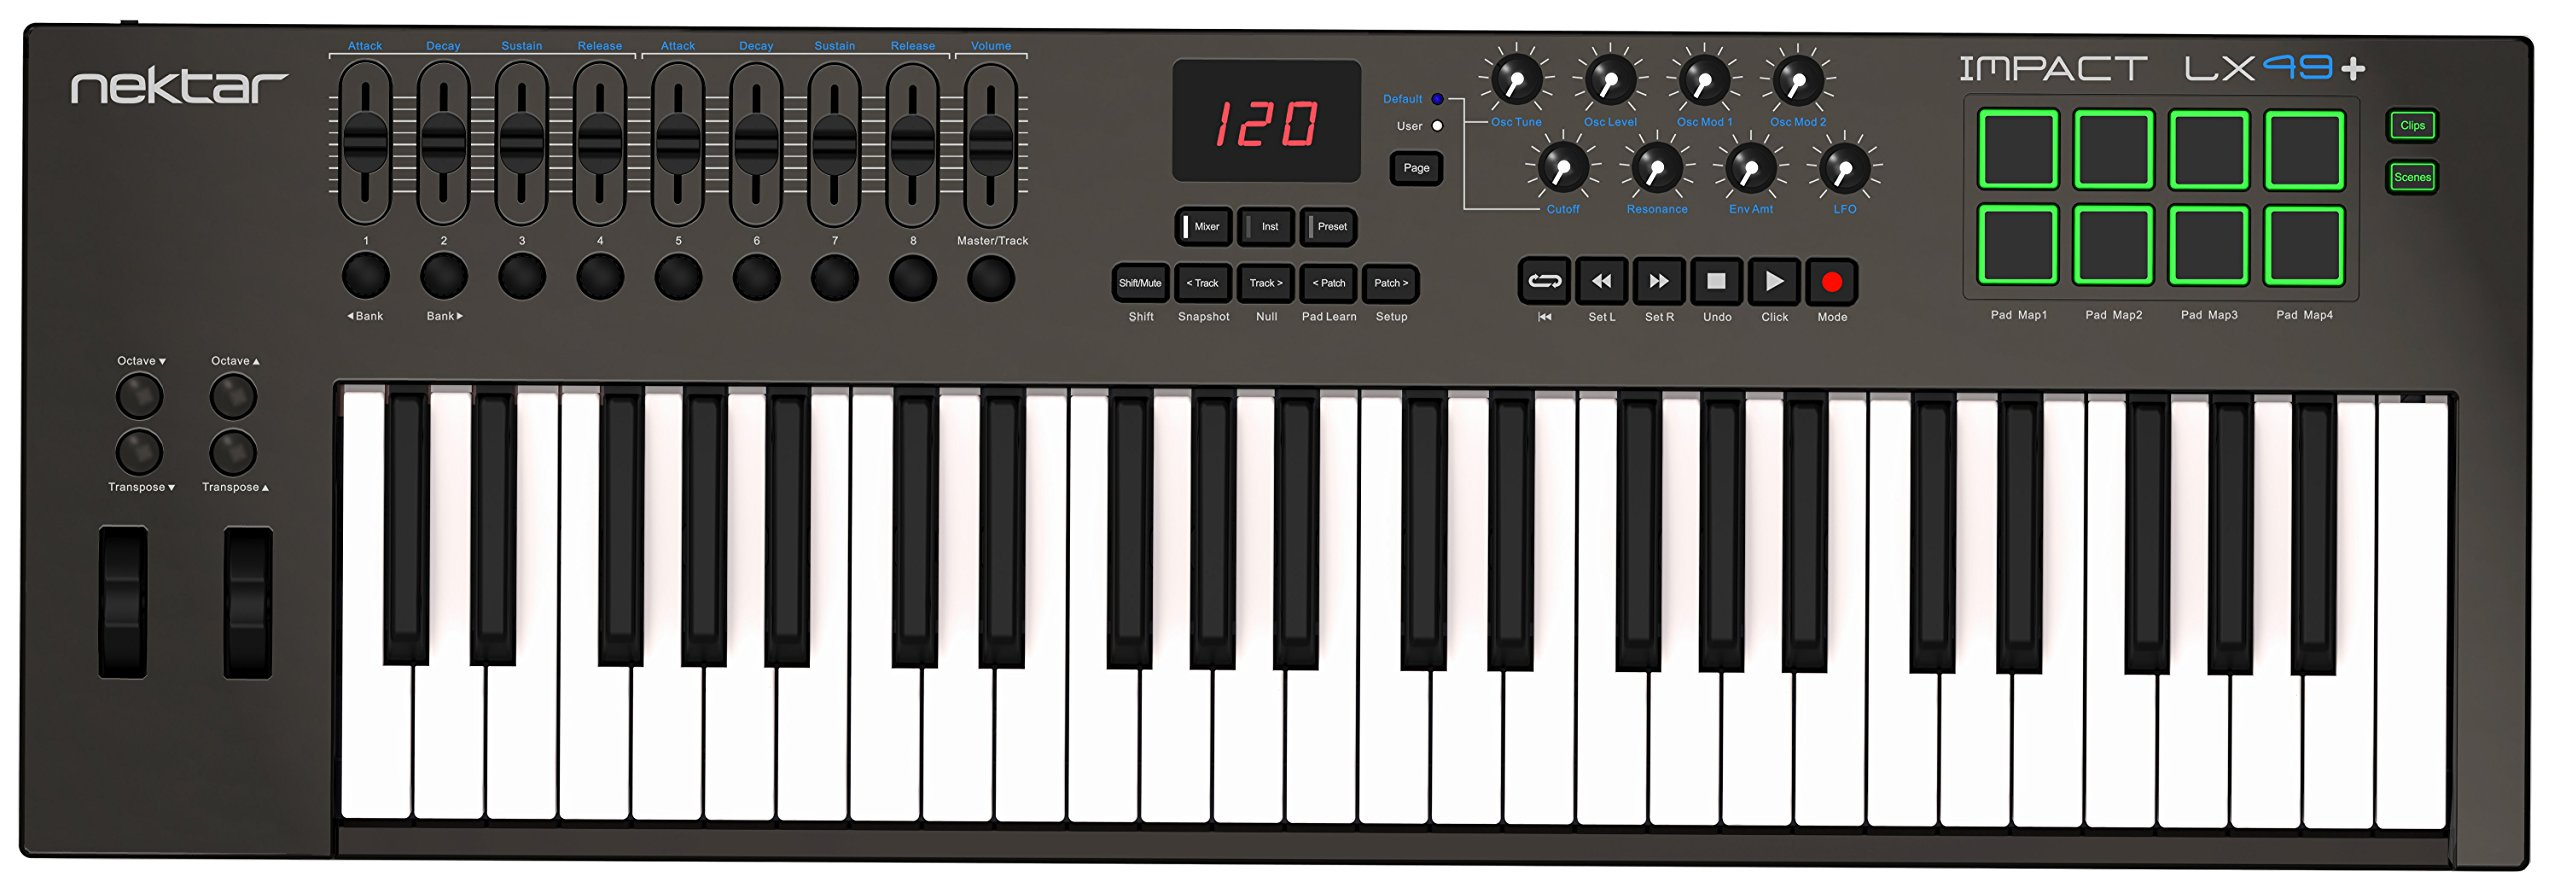 Nektar Impact LX49+ Keyboard Controller - Most Powerful Control